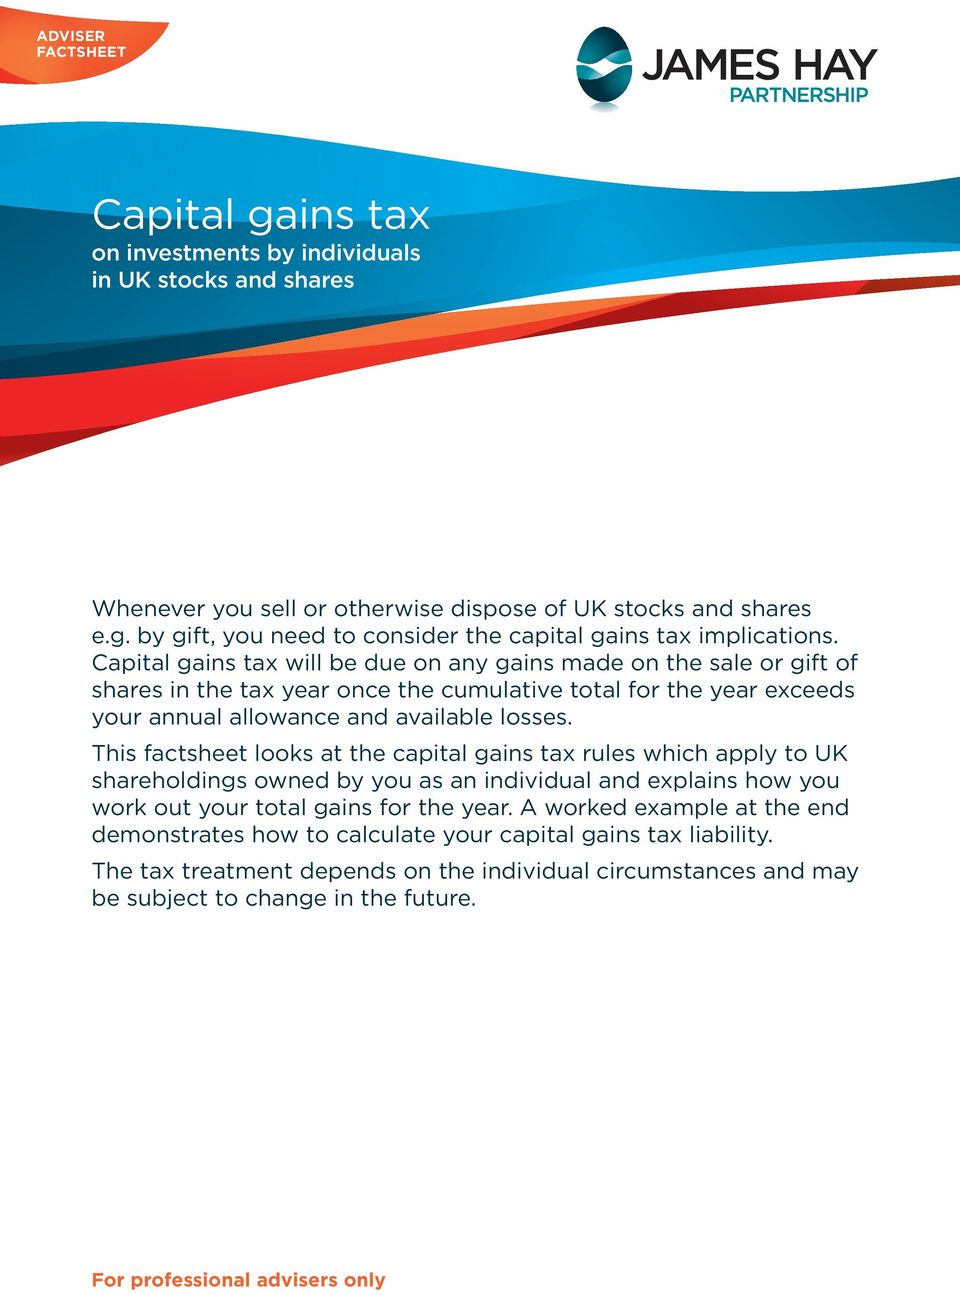 This factsheet looks at the capital gains tax rules which apply to UK shareholdings owned by you as an individual and explains how you work out your total gains for the year.